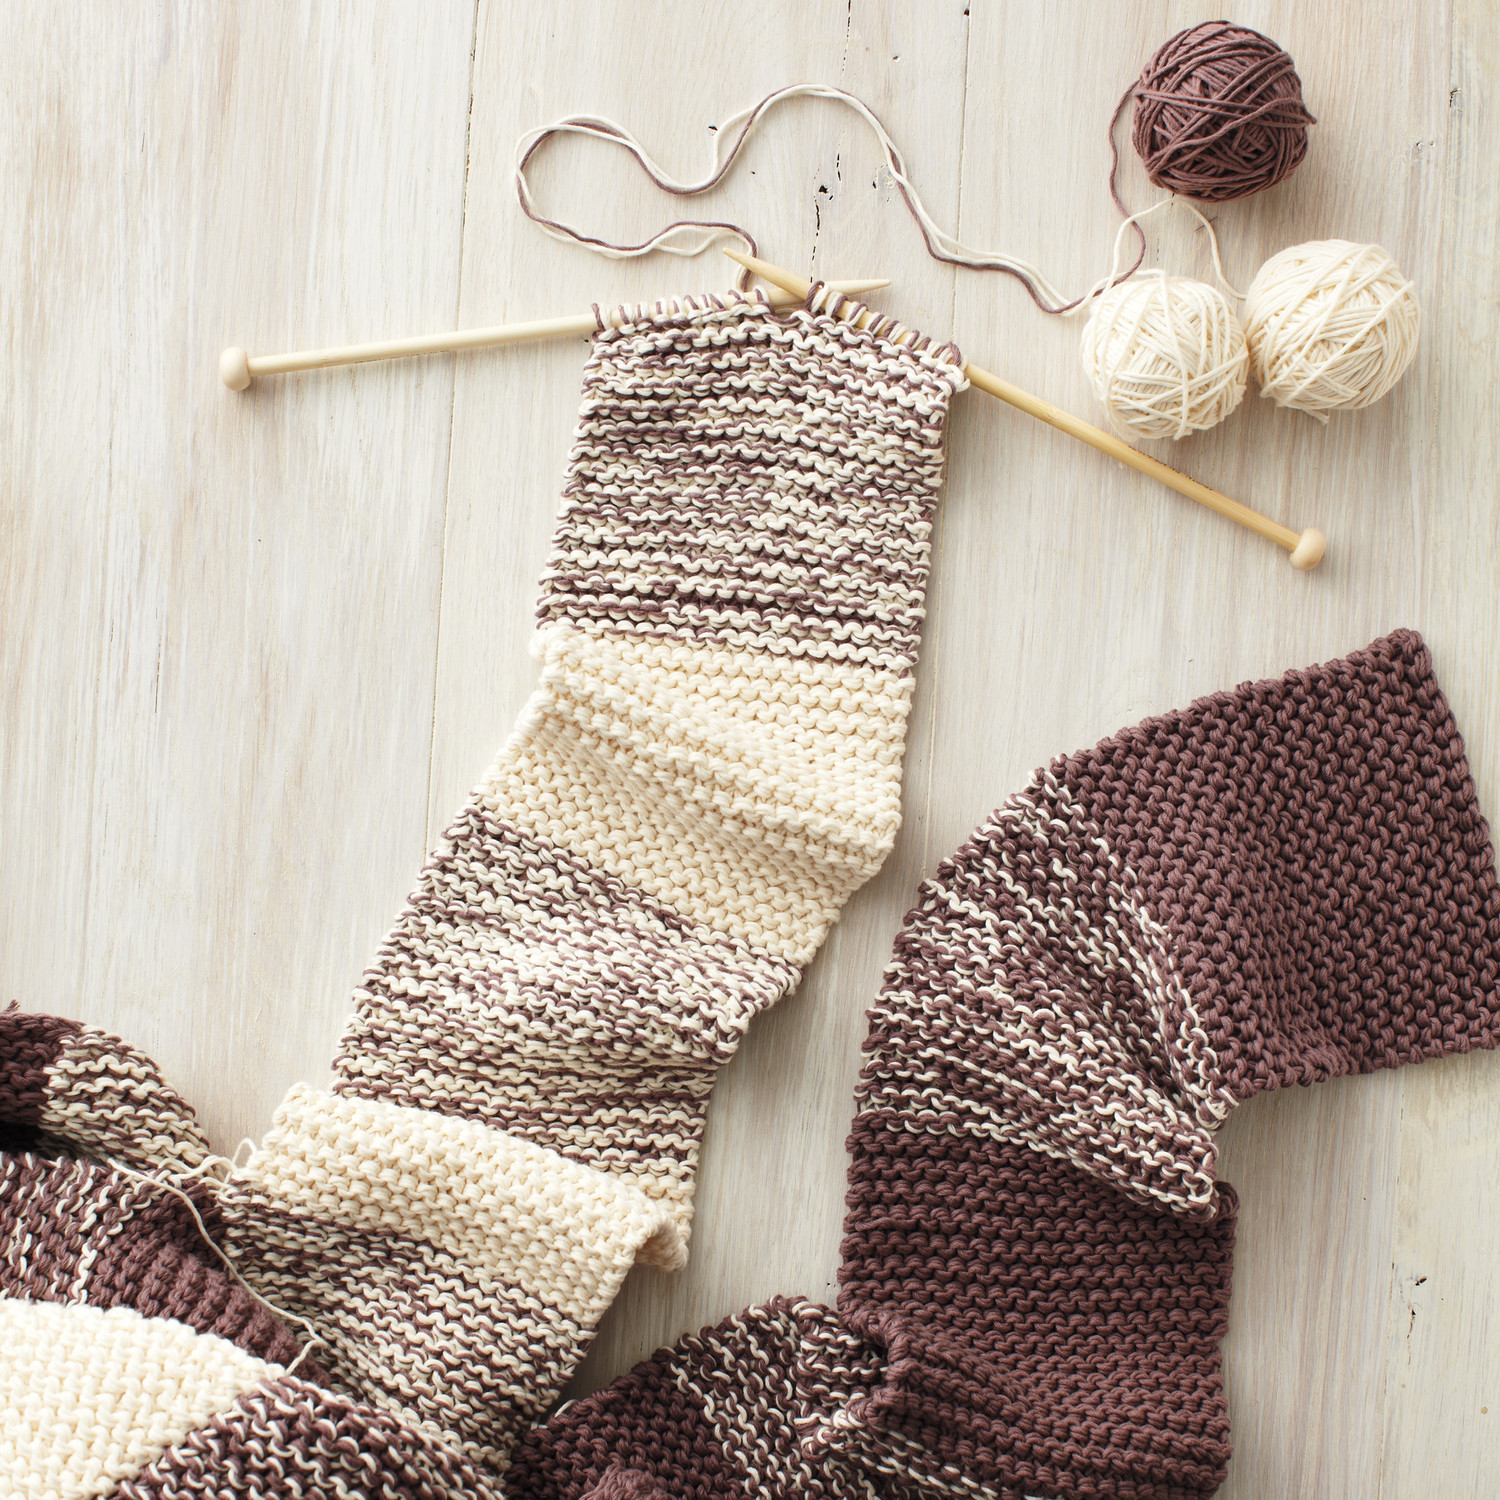 Knitting Ideas Charming Patterns And Creative Projects